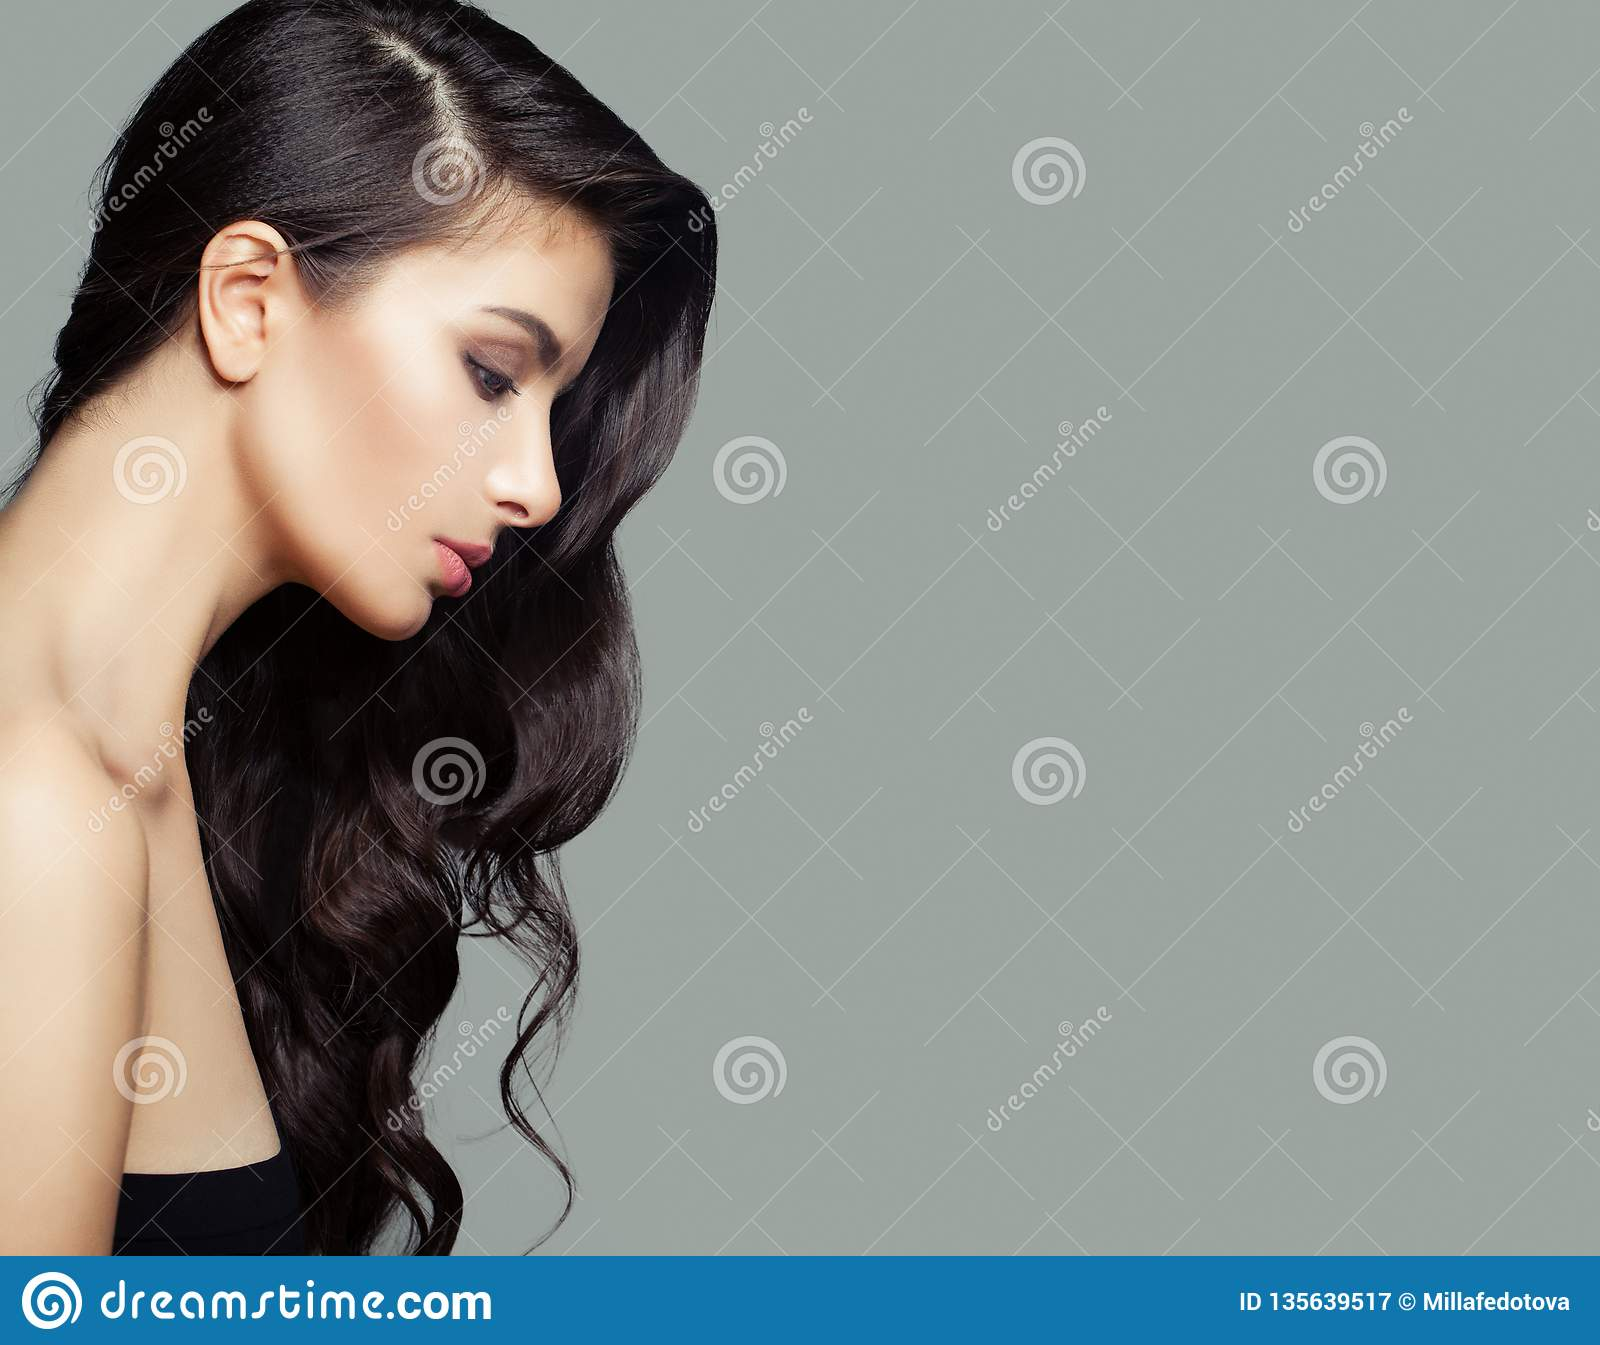 Young brunette woman with long perfect hairstyle. Hair care and beauty salon background